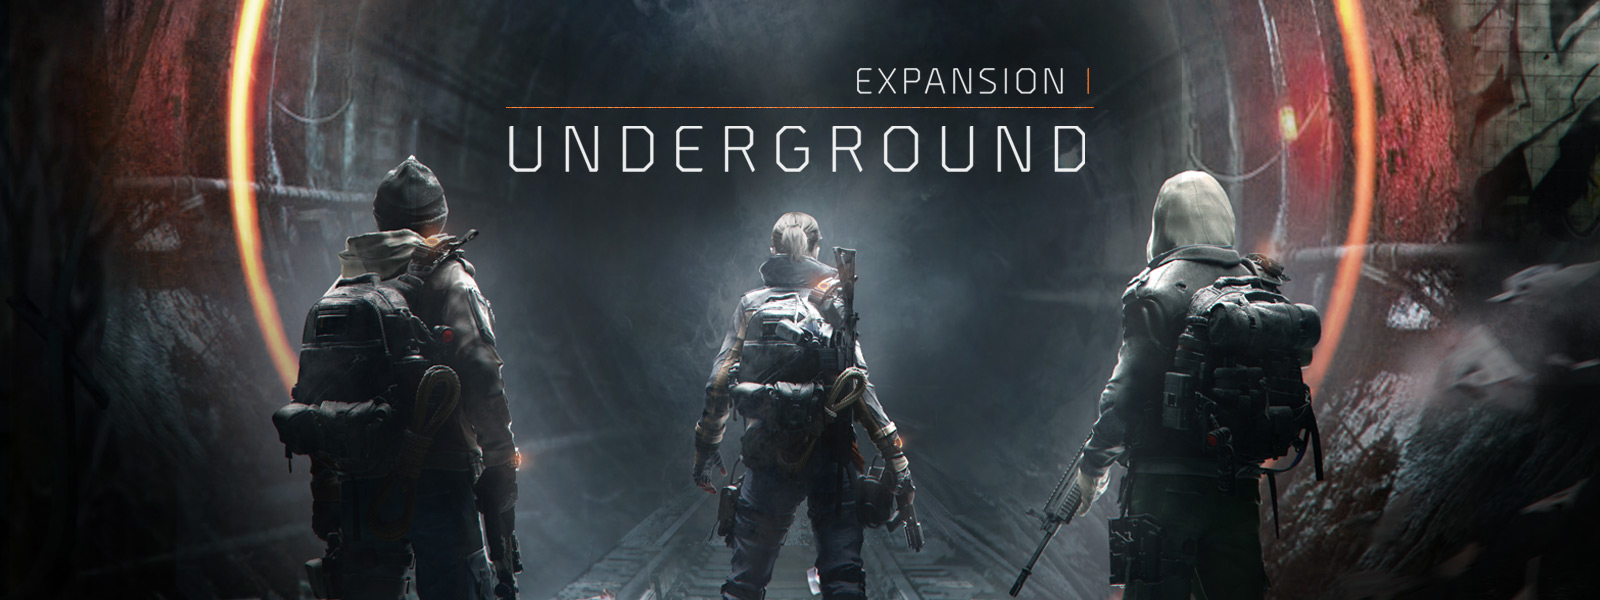 Expansion 1: Underground